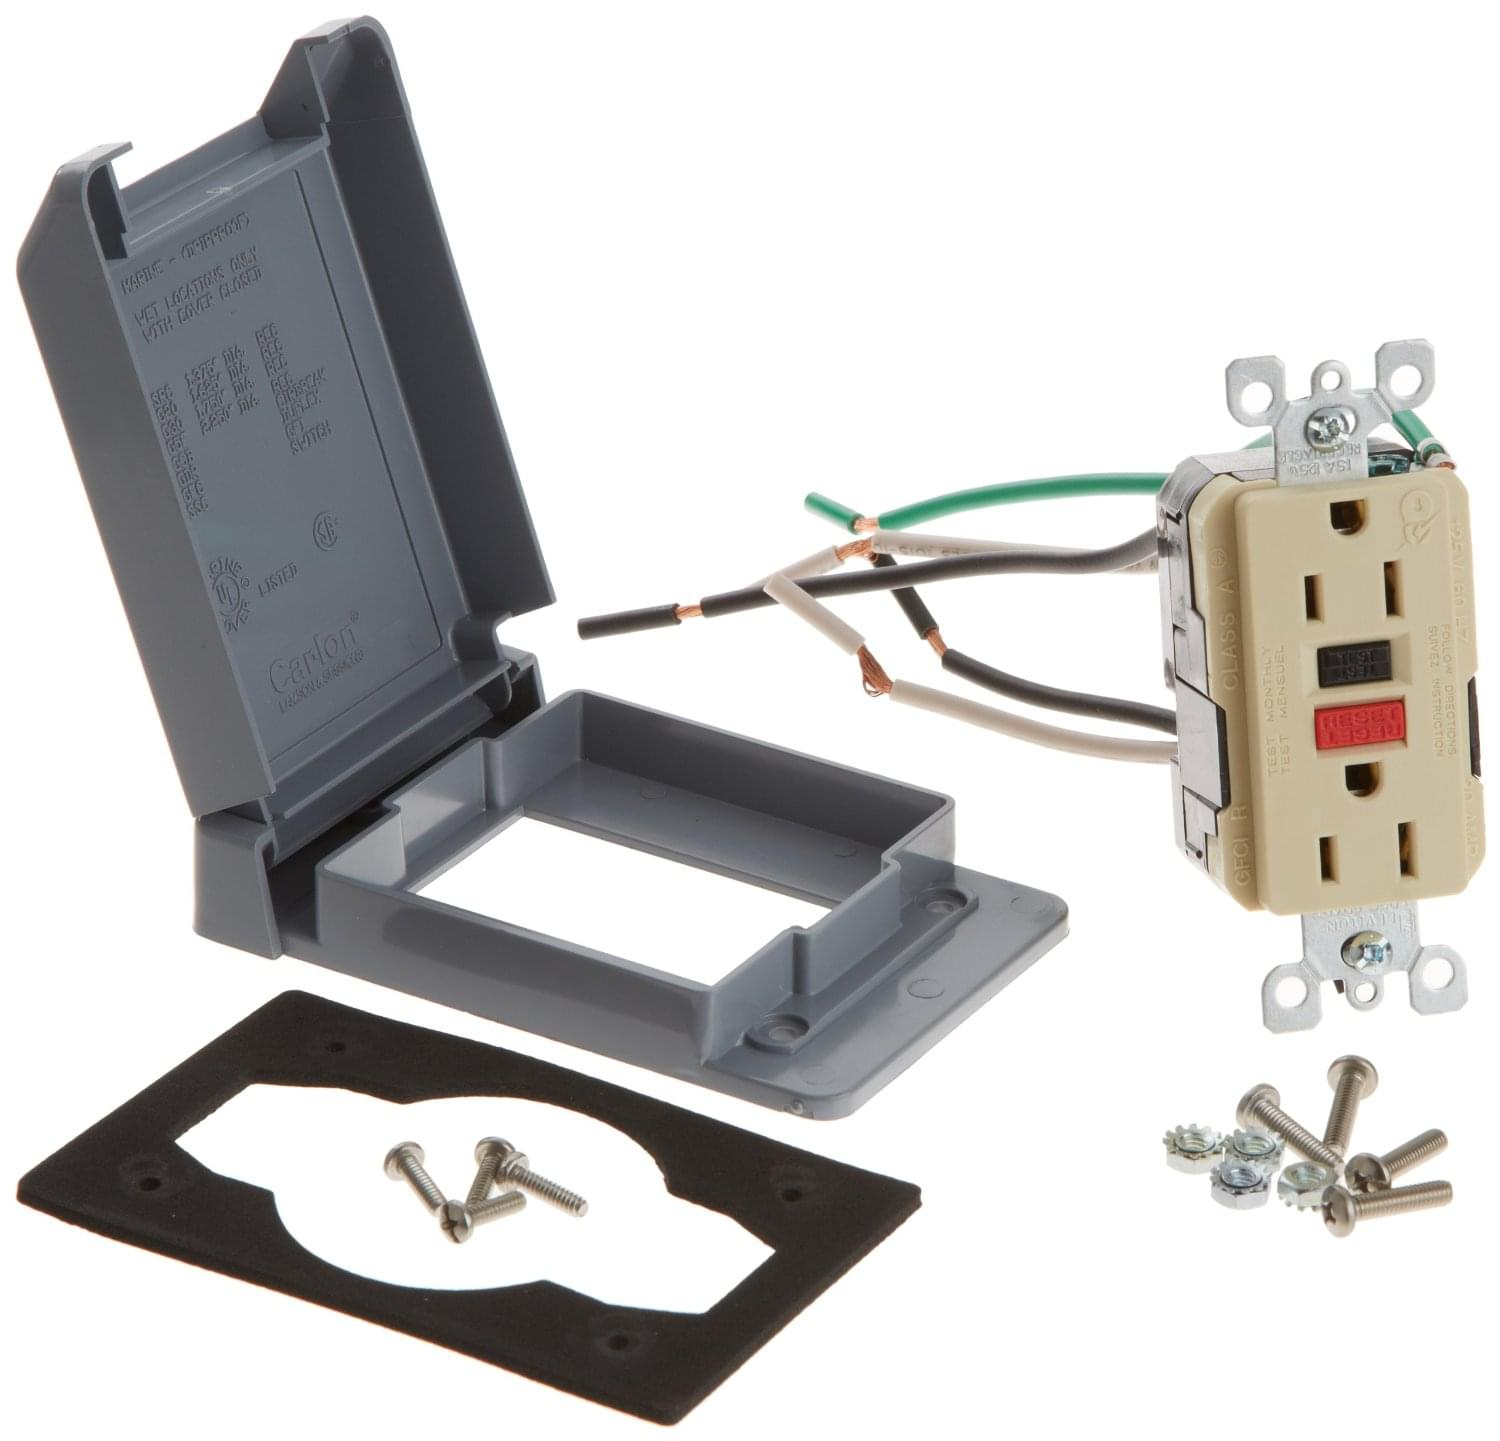 Ground Fault Circuit Interruptor Zodiac 6070 Interrupters Kit Replacement